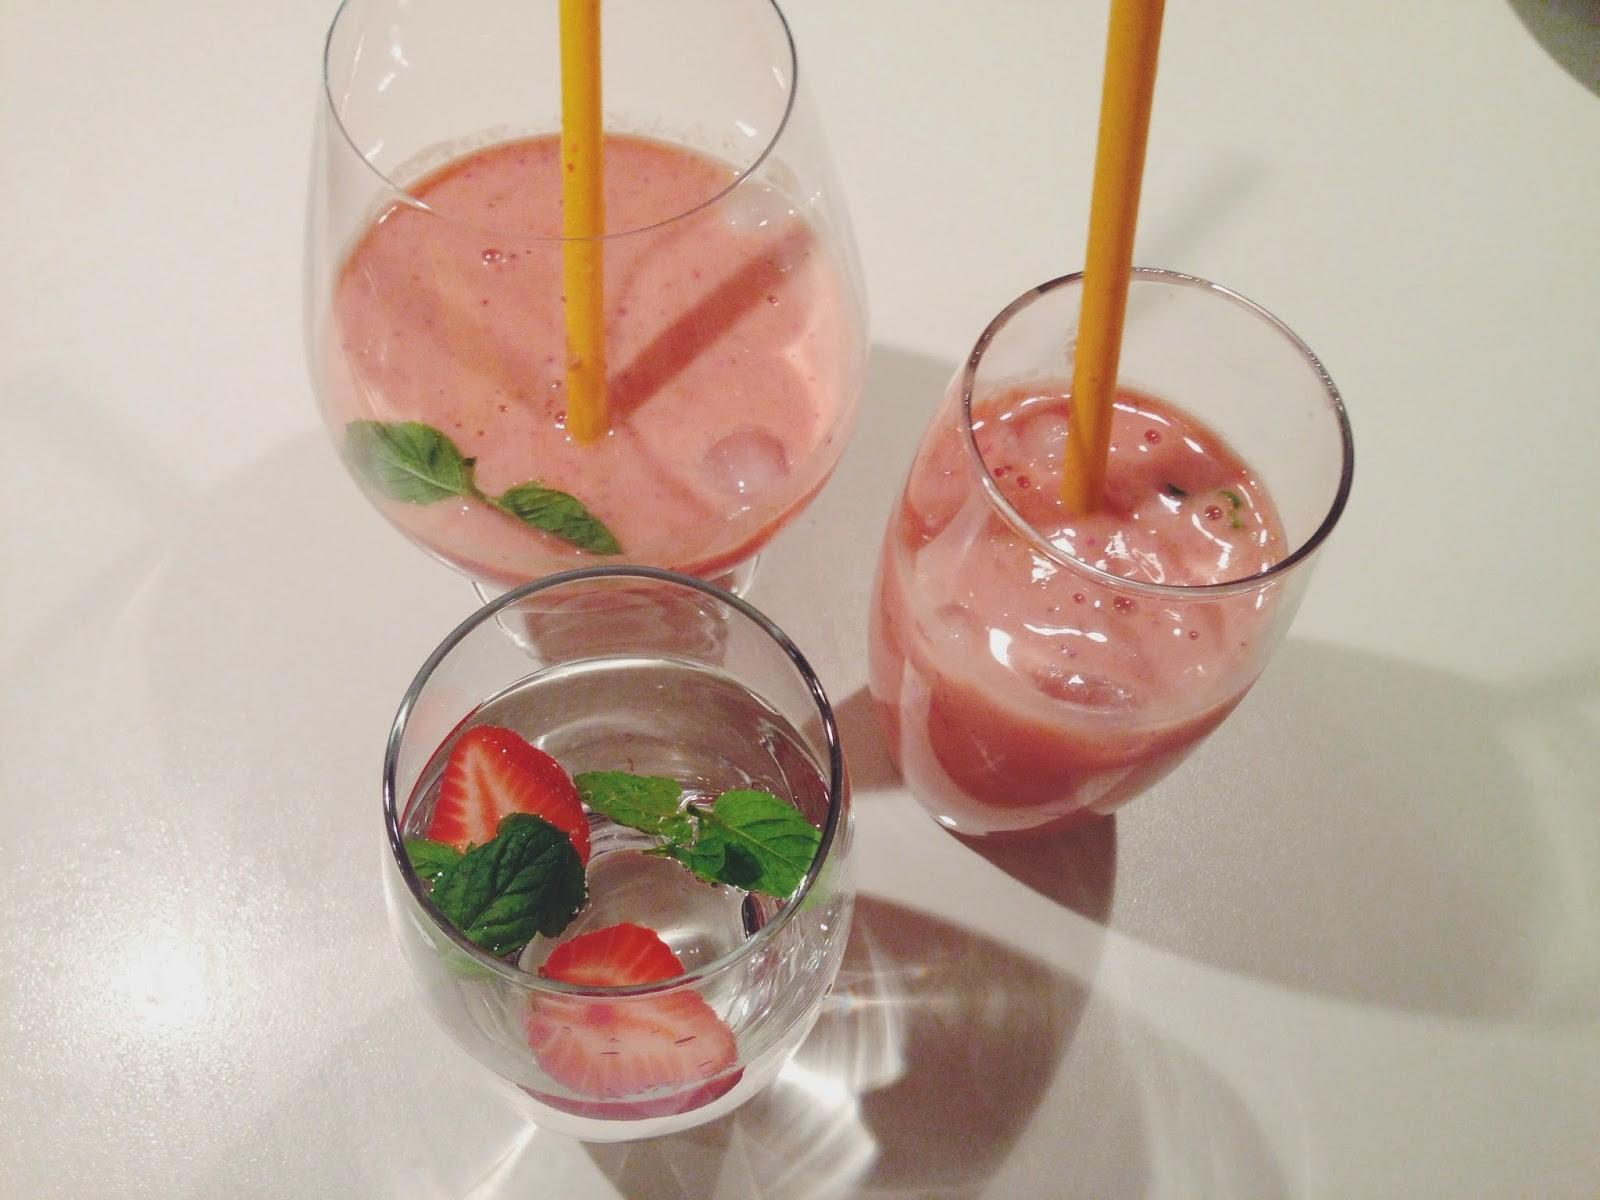 Photostorming Summer Smoothie